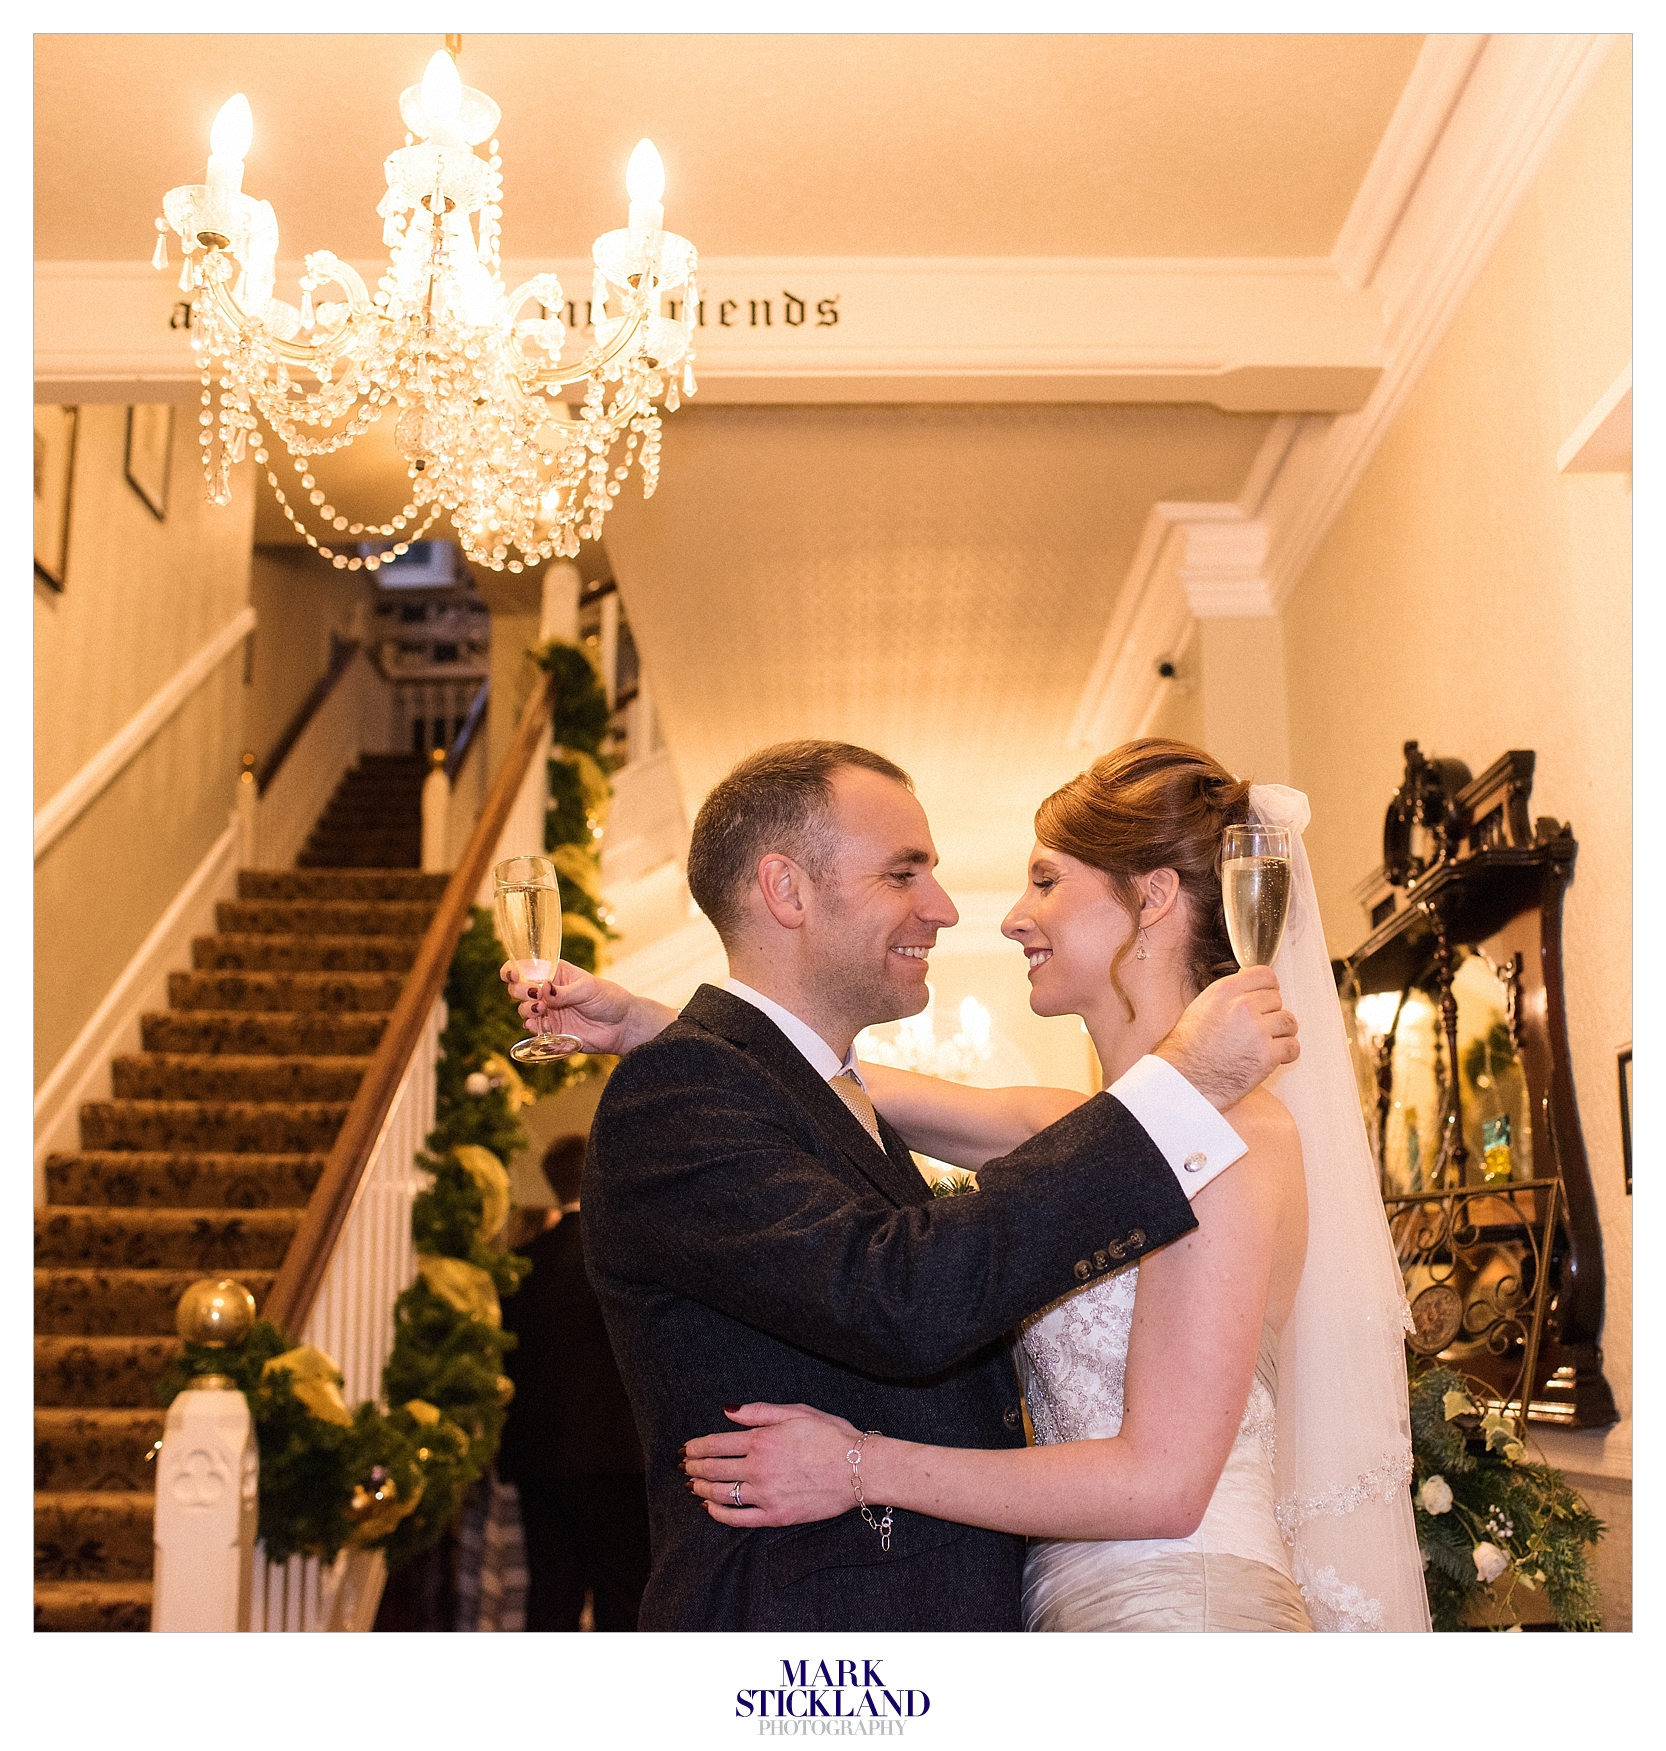 langtry manor hotel_wedding_bournemouth_dorset_mark stickland photography._0018